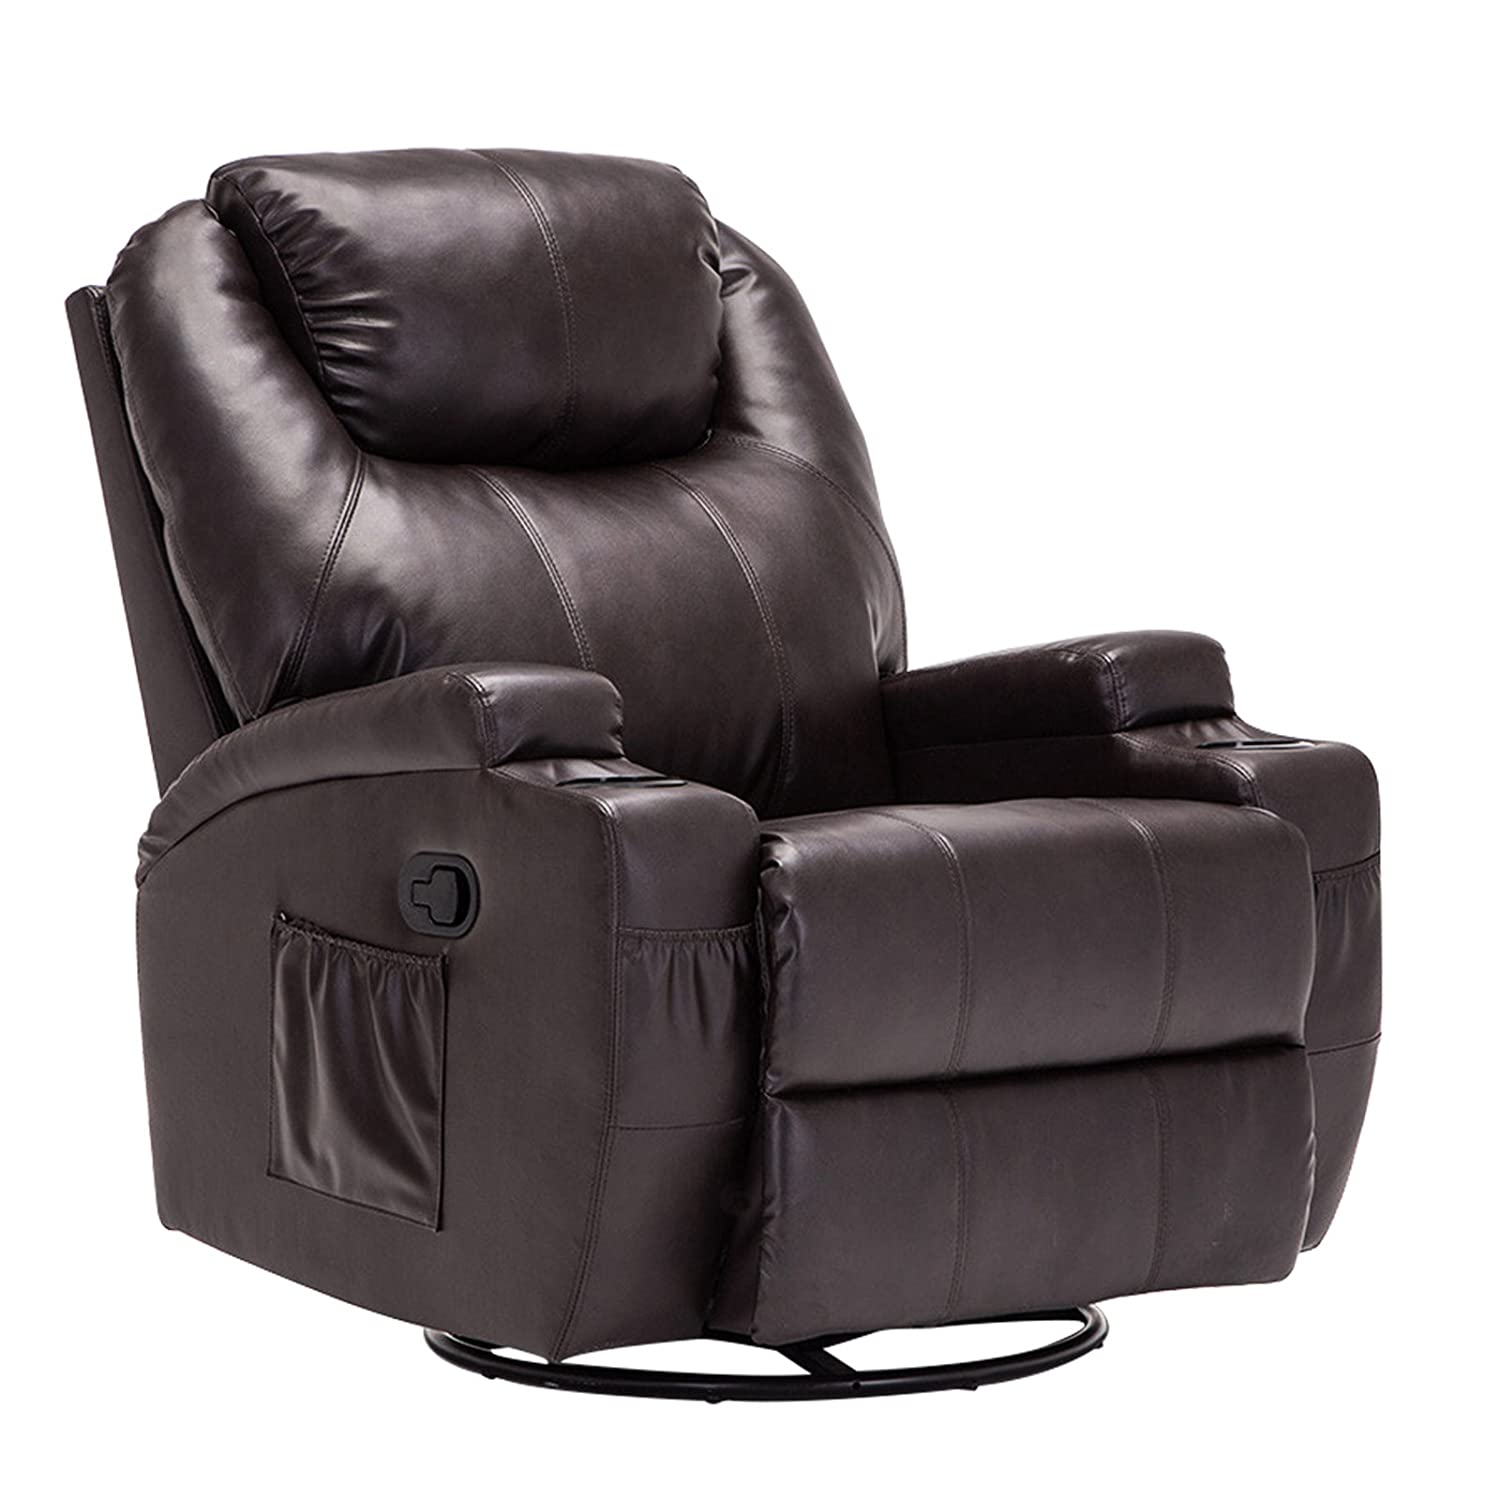 silverplain electric cheap dfs newbury recliner prestige chair chairs